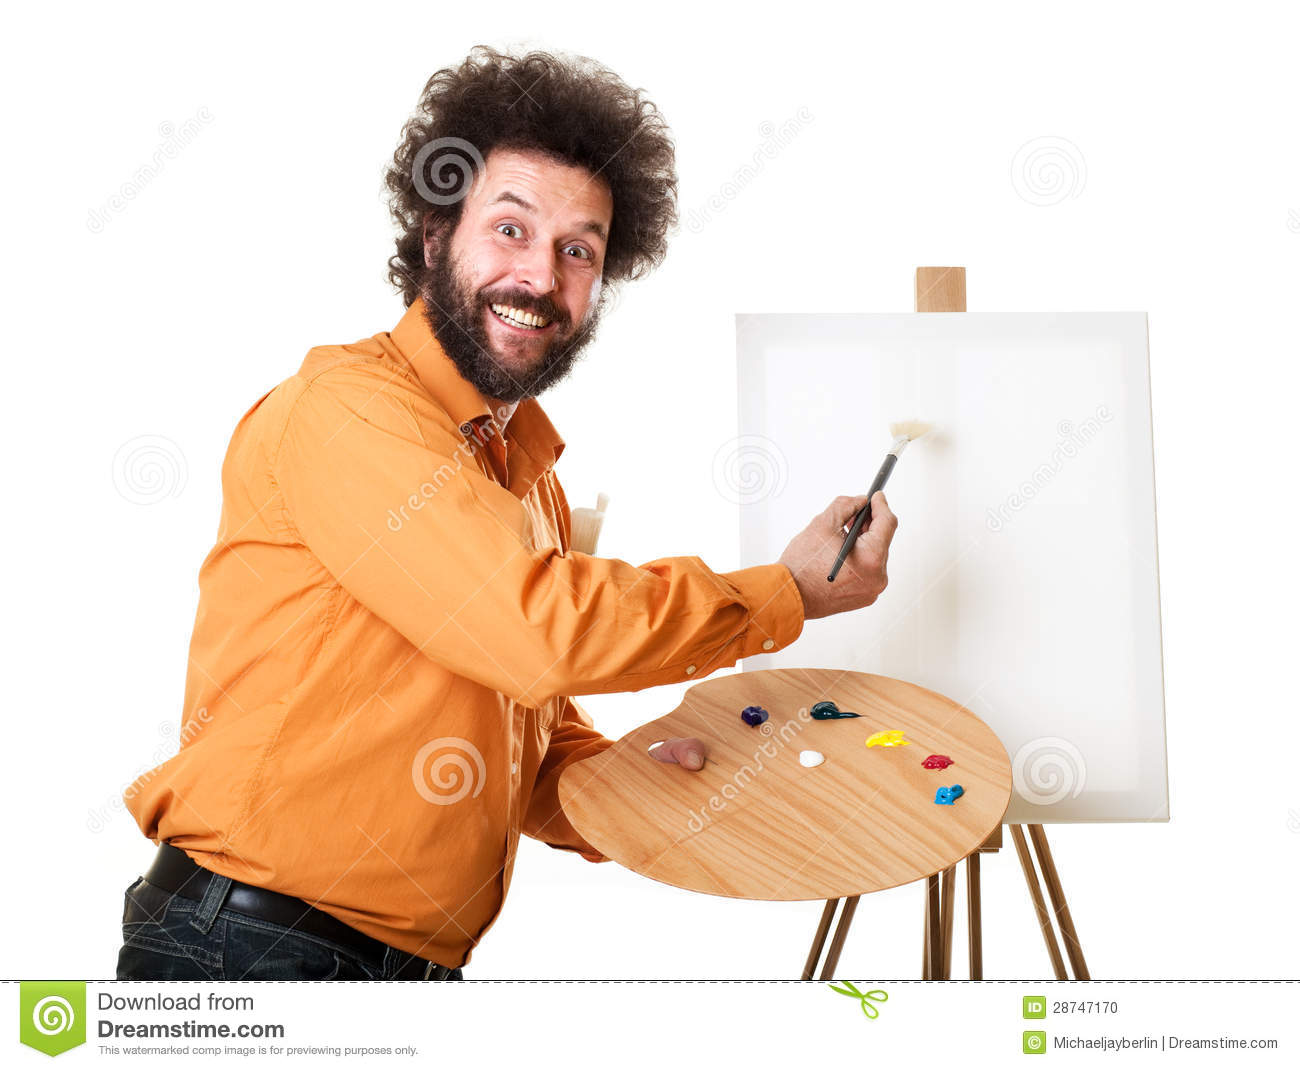 Guy In A Bright Orange Shirt Ready To Paint With A Weird Smile On